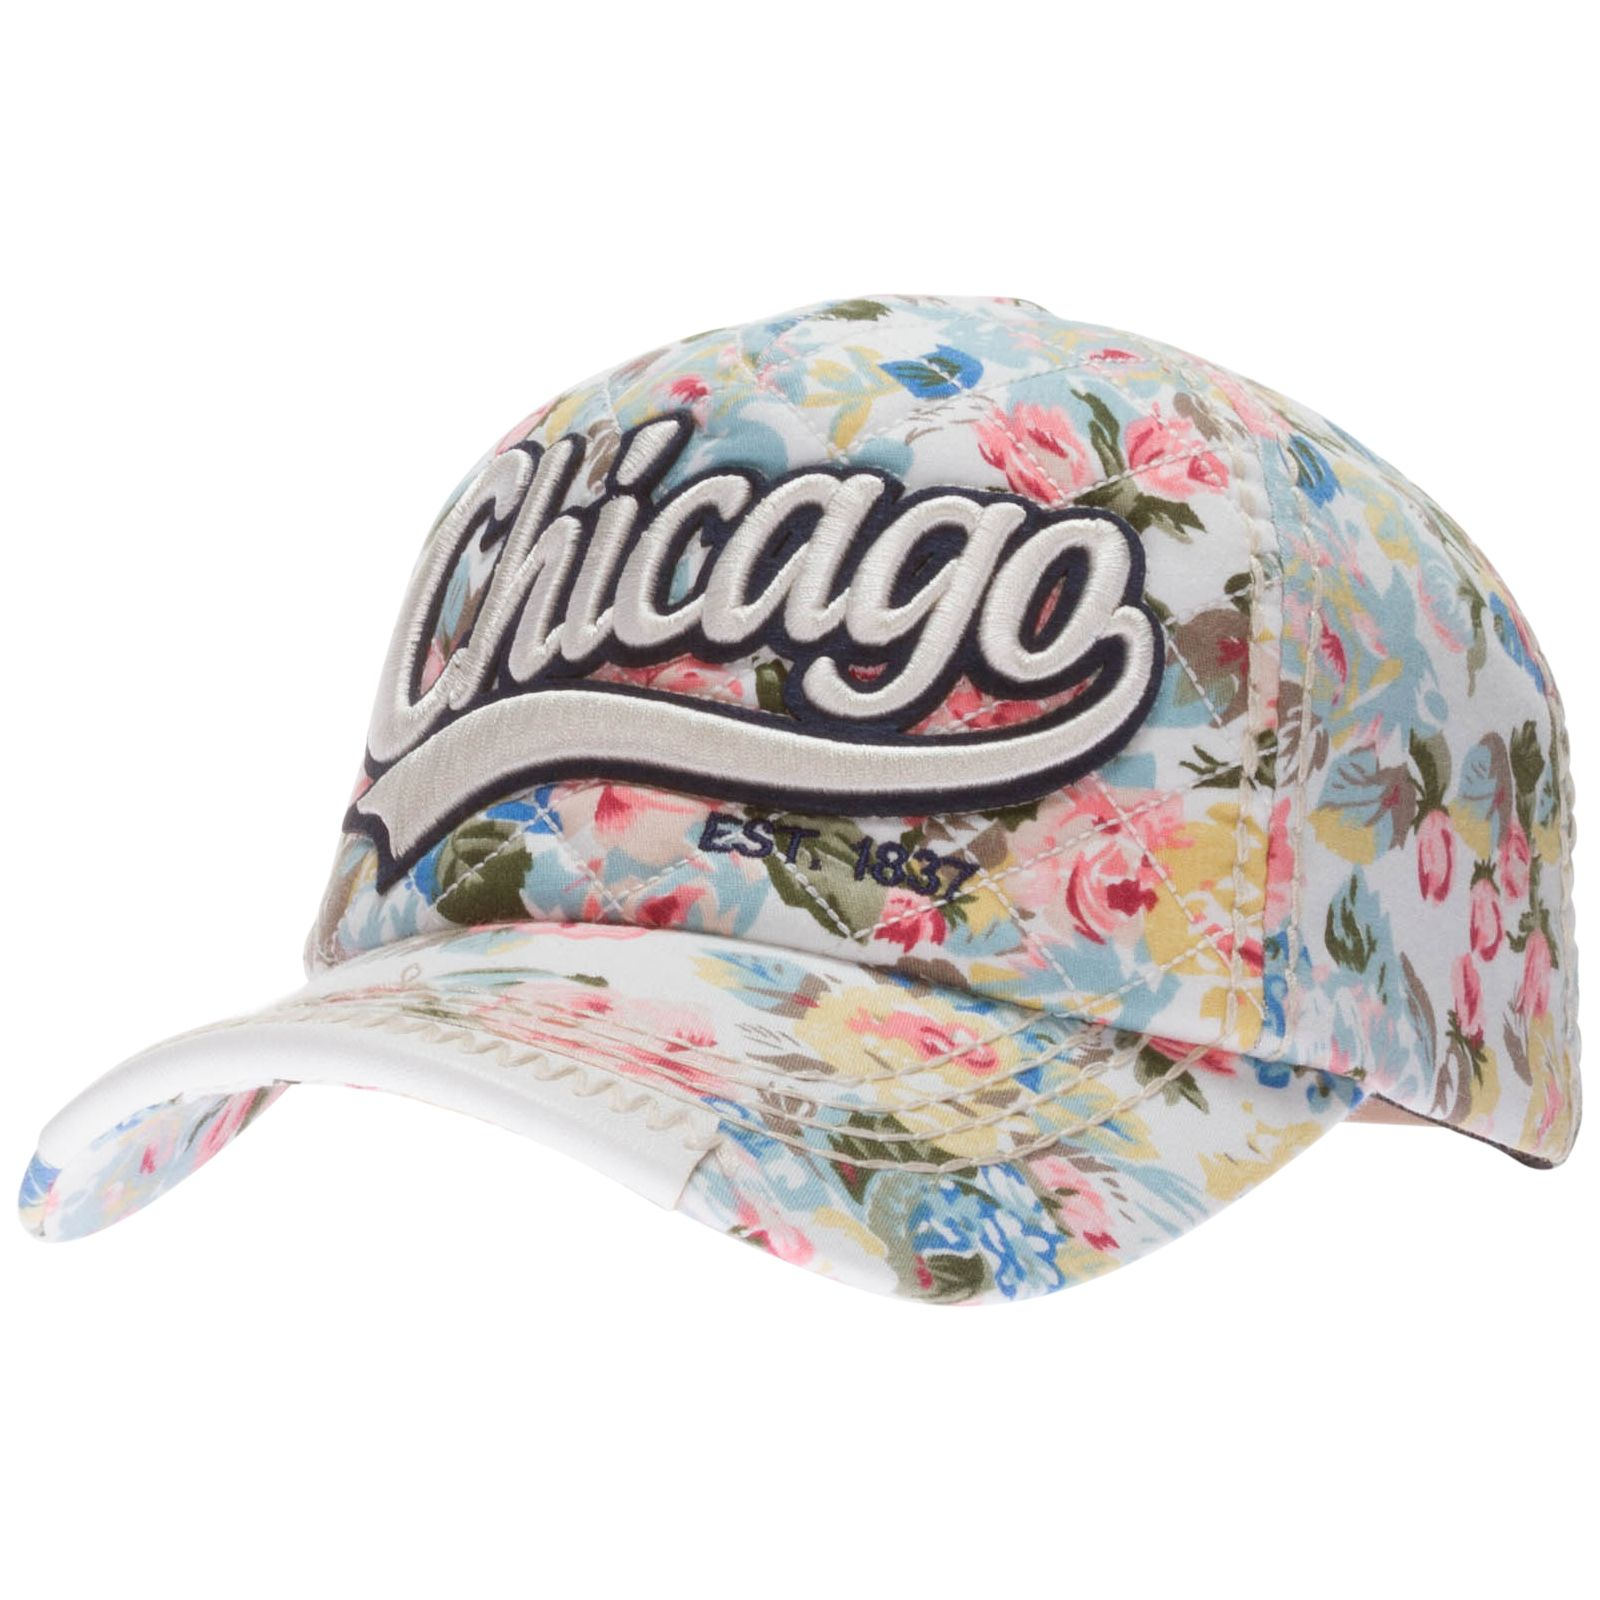 Chicago White Floral Pattern Adjustable Hat by Robin Ruth  Chicago  ChiTown   WindyCity bd4203f6c4b6